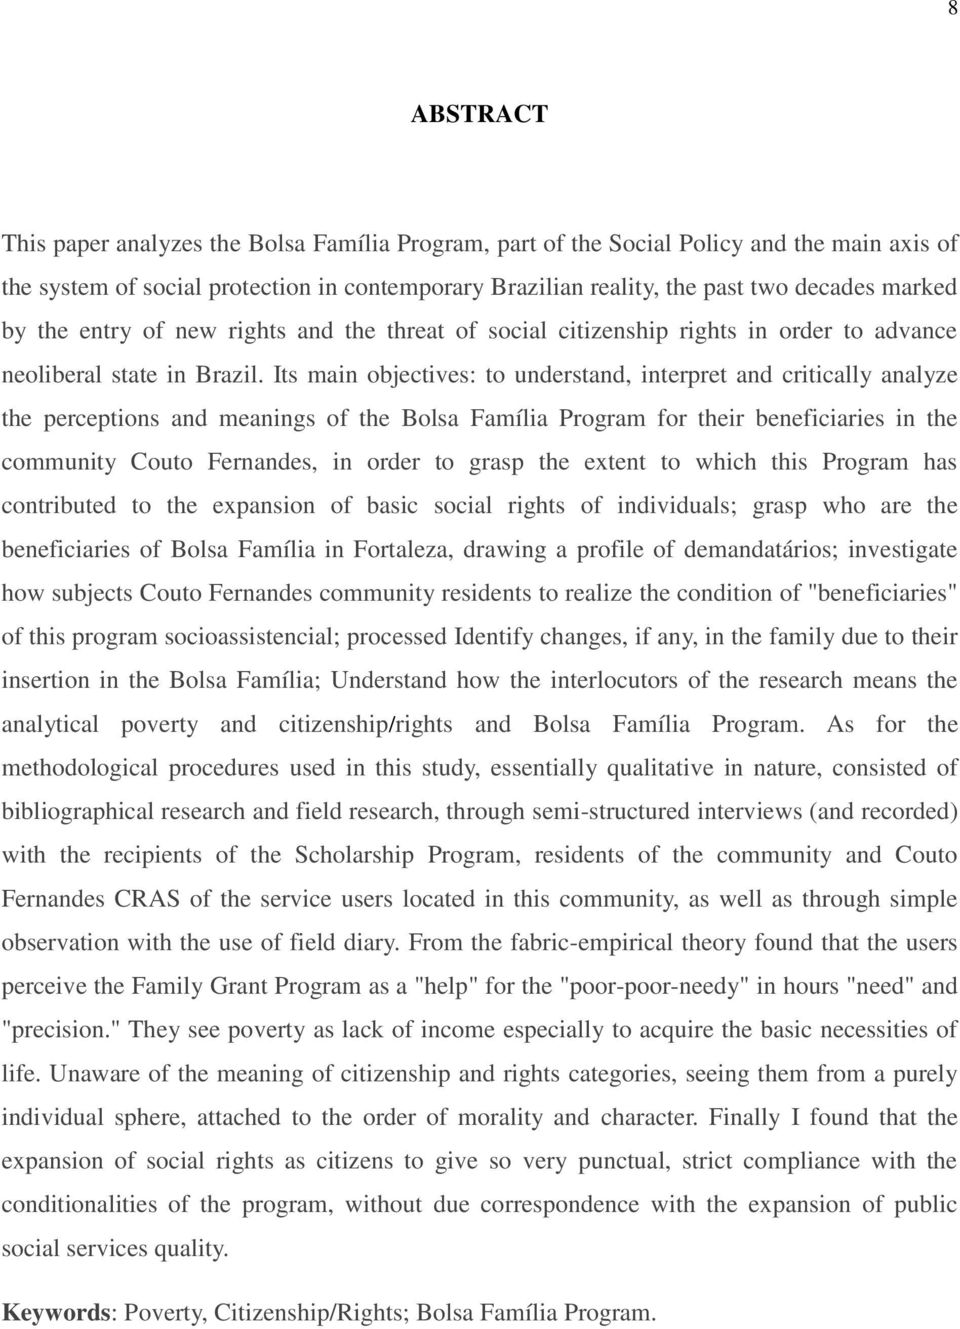 Its main objectives: to understand, interpret and critically analyze the perceptions and meanings of the Bolsa Família Program for their beneficiaries in the community Couto Fernandes, in order to